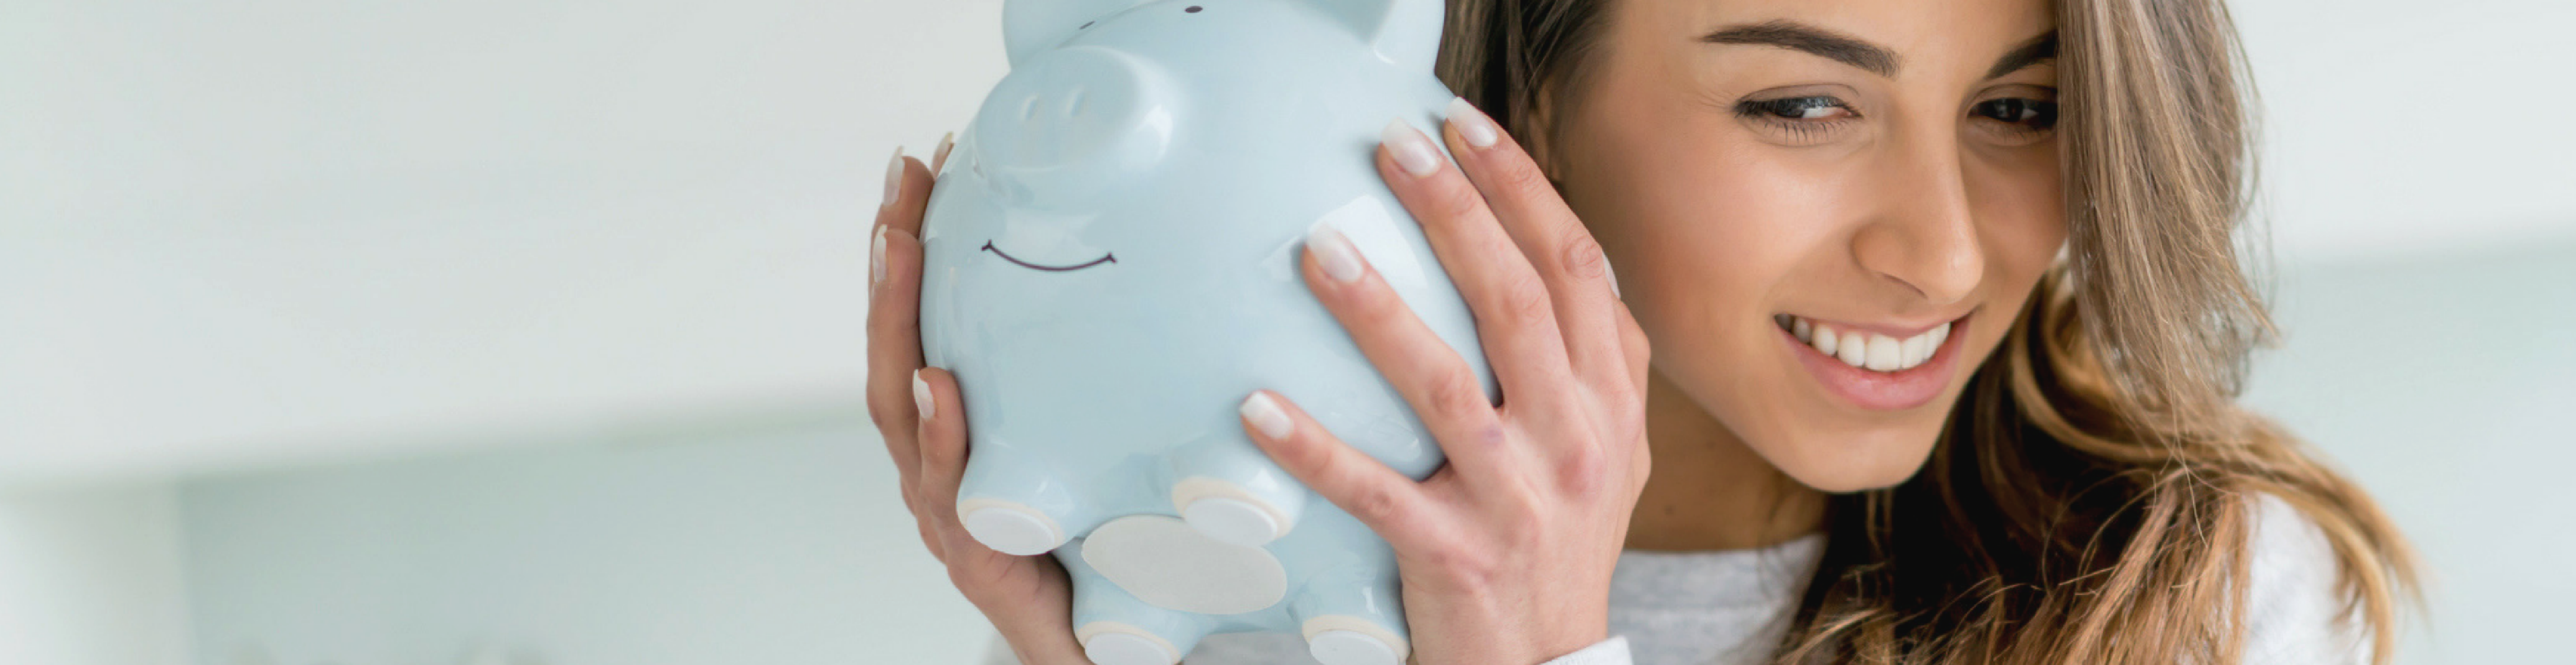 Find The Balance Between Borrowing Too Much and Too Little